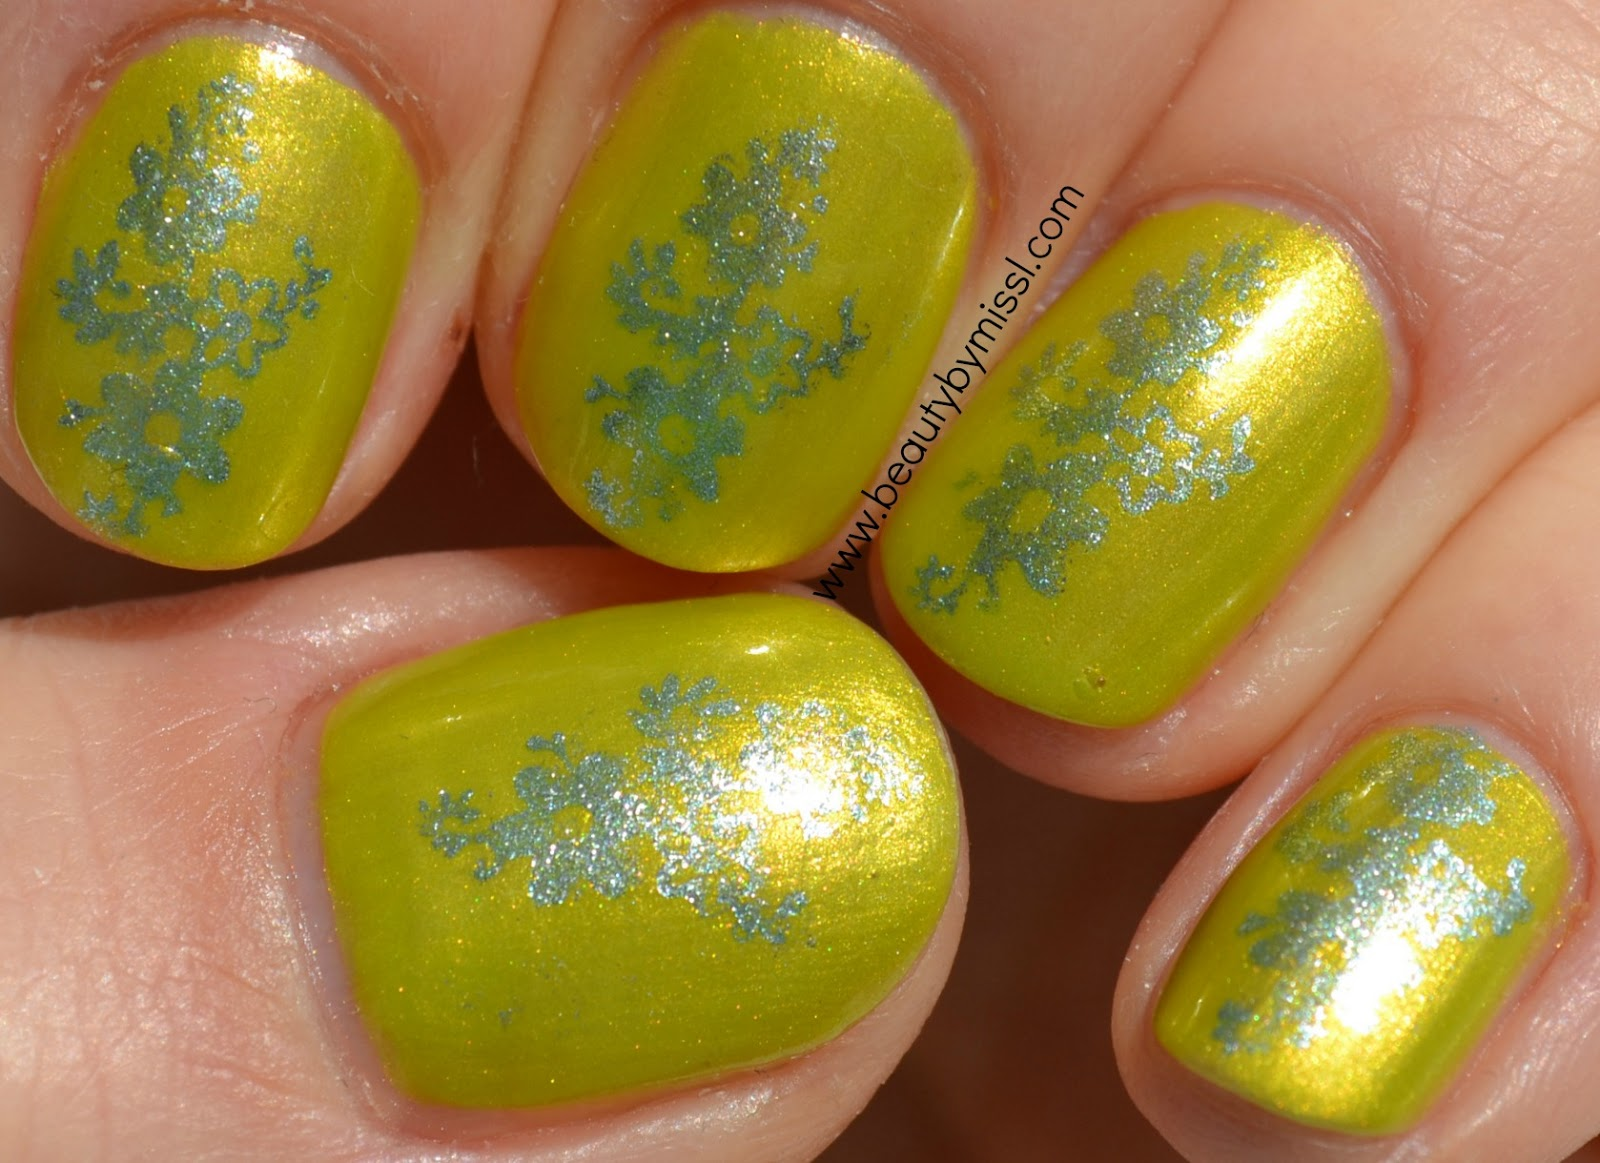 nails of the day, notd, stamping